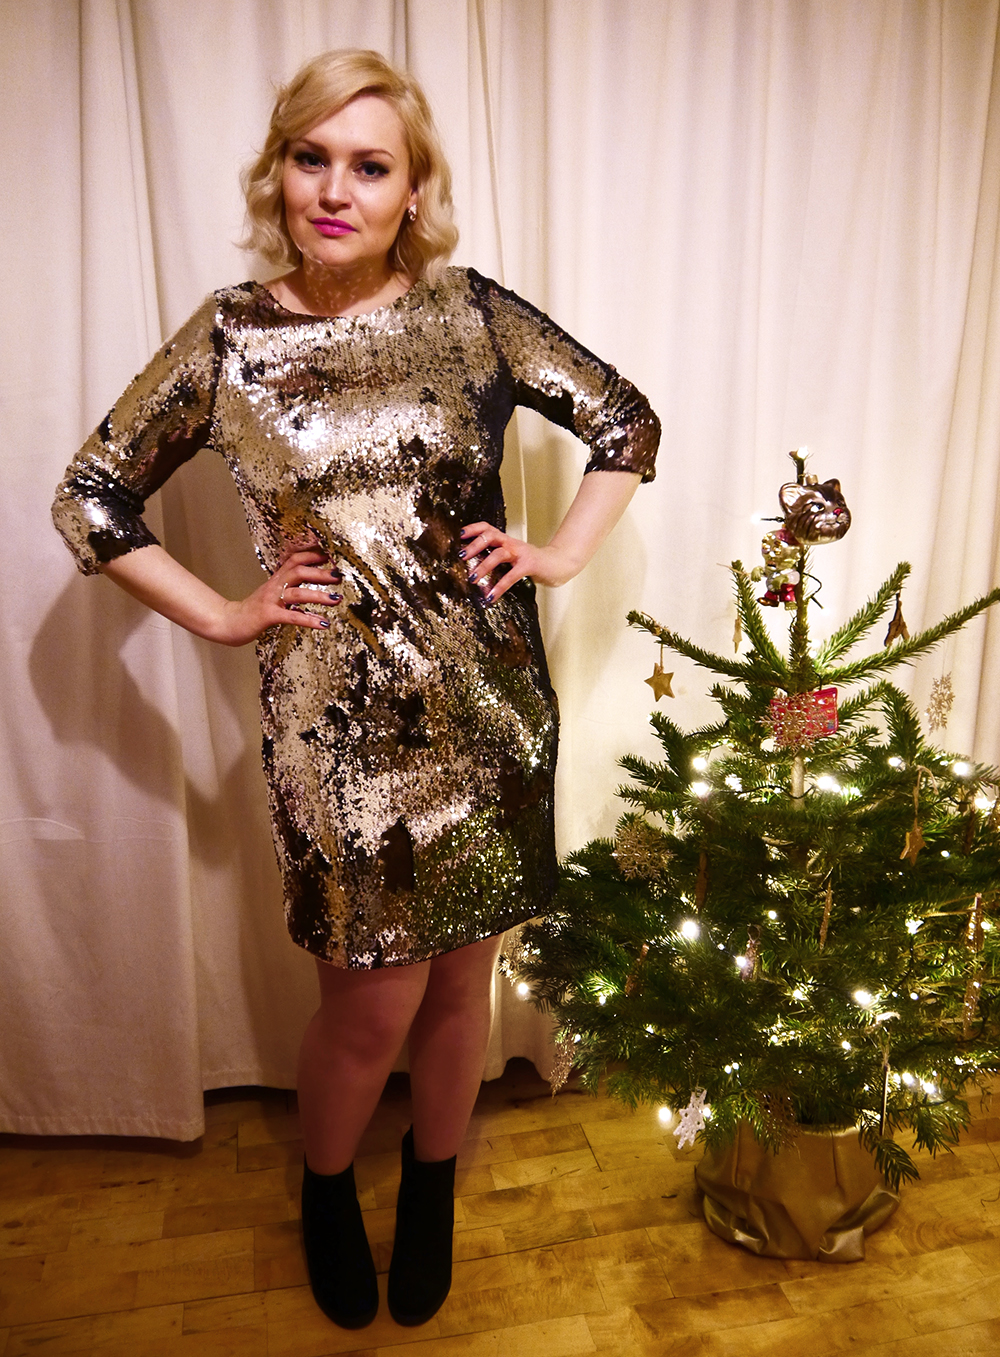 silver sequin mini dress, Topshop maternity, plus size Scottish blogger, blog photographs in winter light